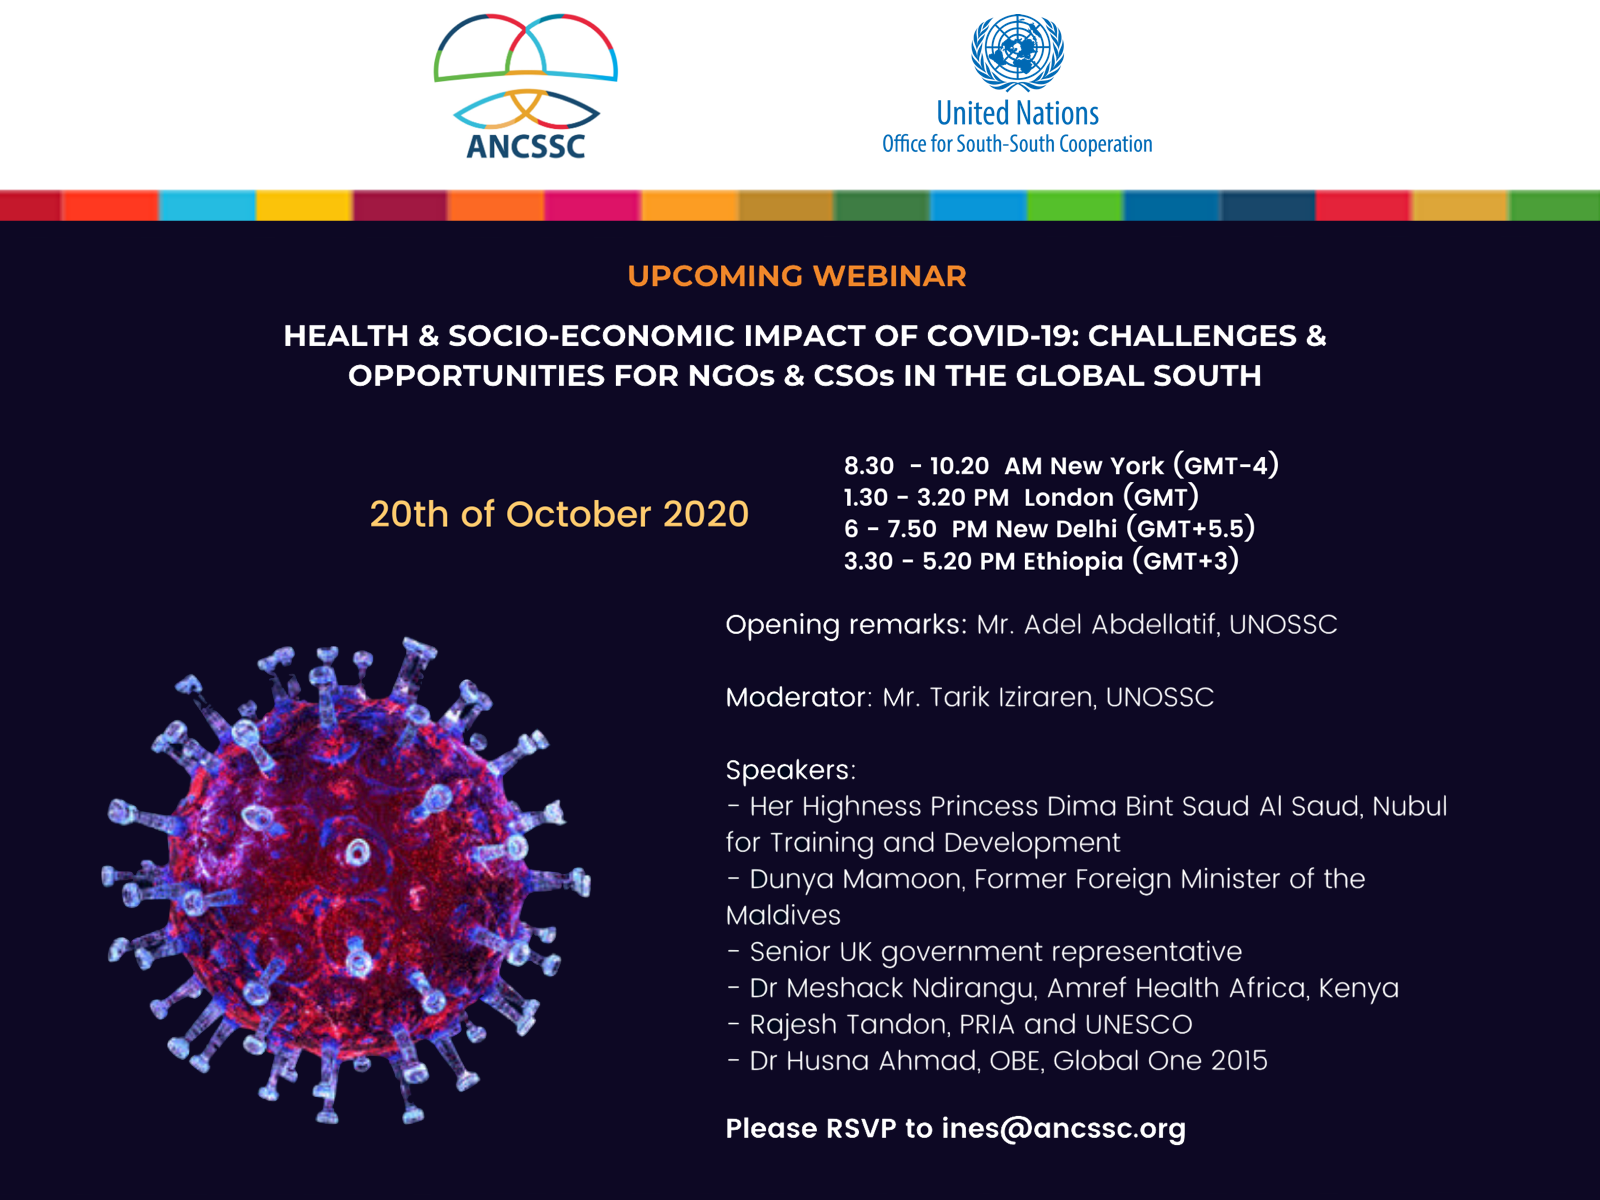 Health and Socio-Economic Impact of COVID19: Challenges and Opportunities for NGOs and CSOs in the Global South